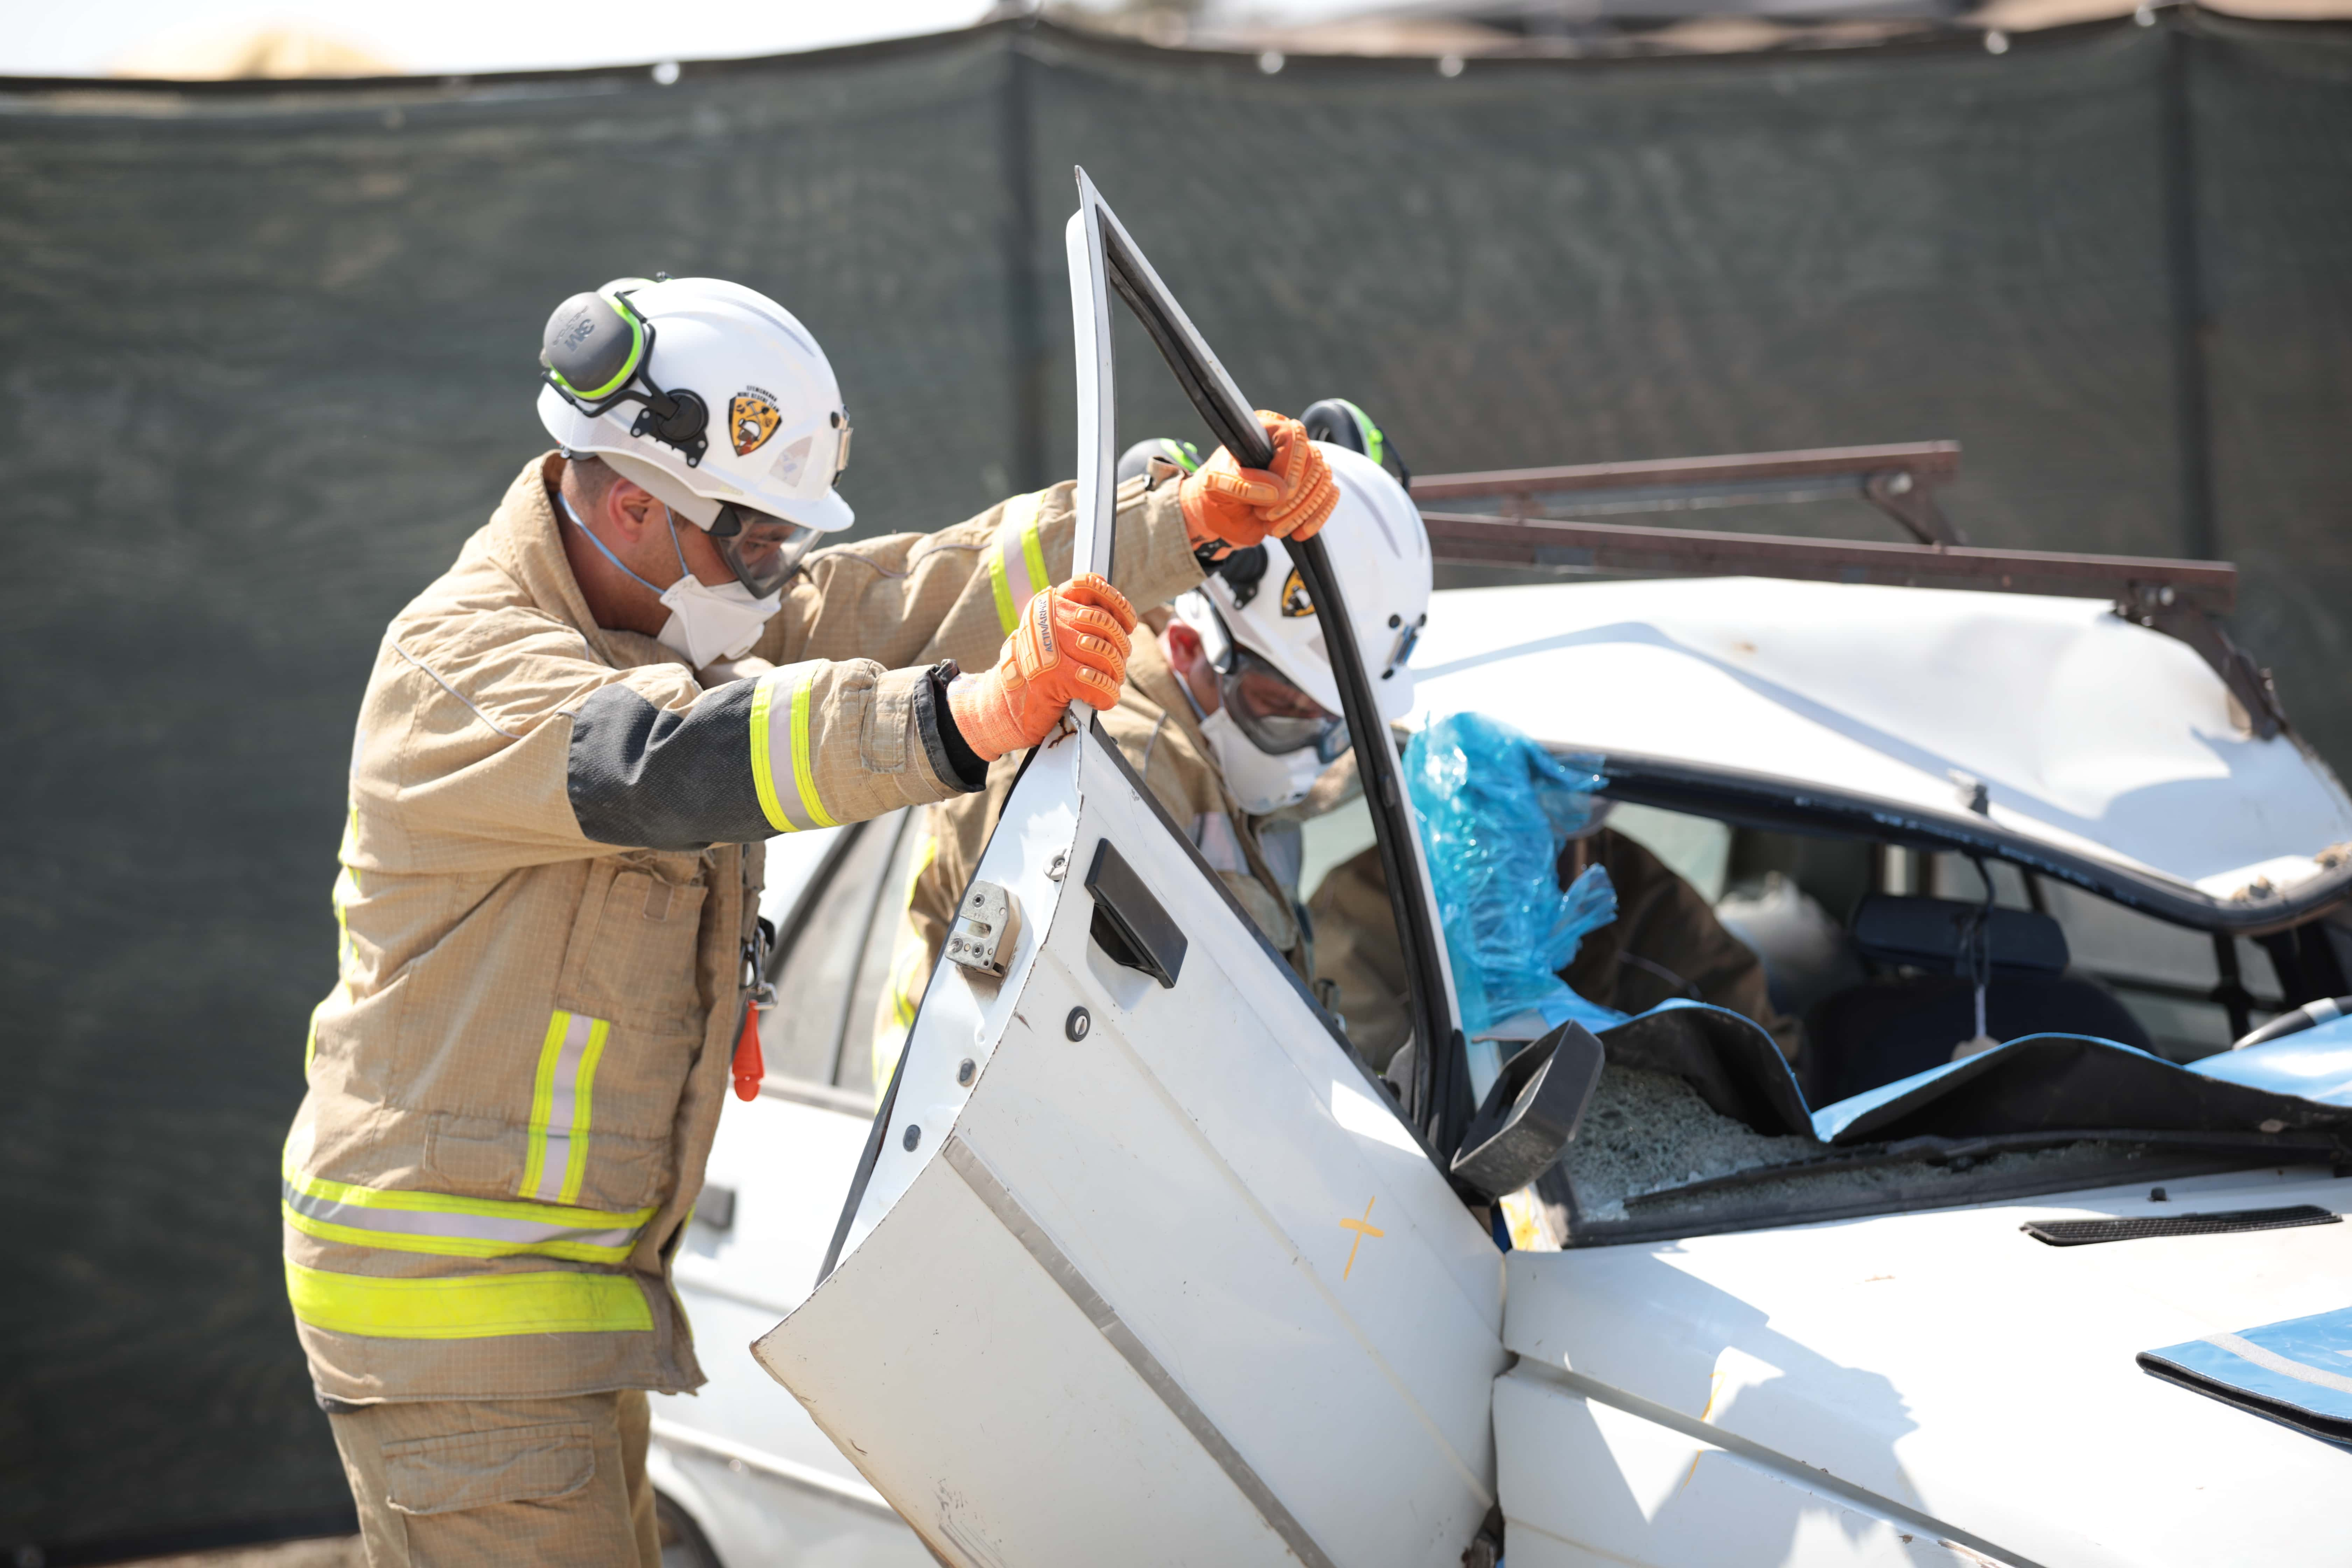 Vehicle accident response activity during the mine rescue competition